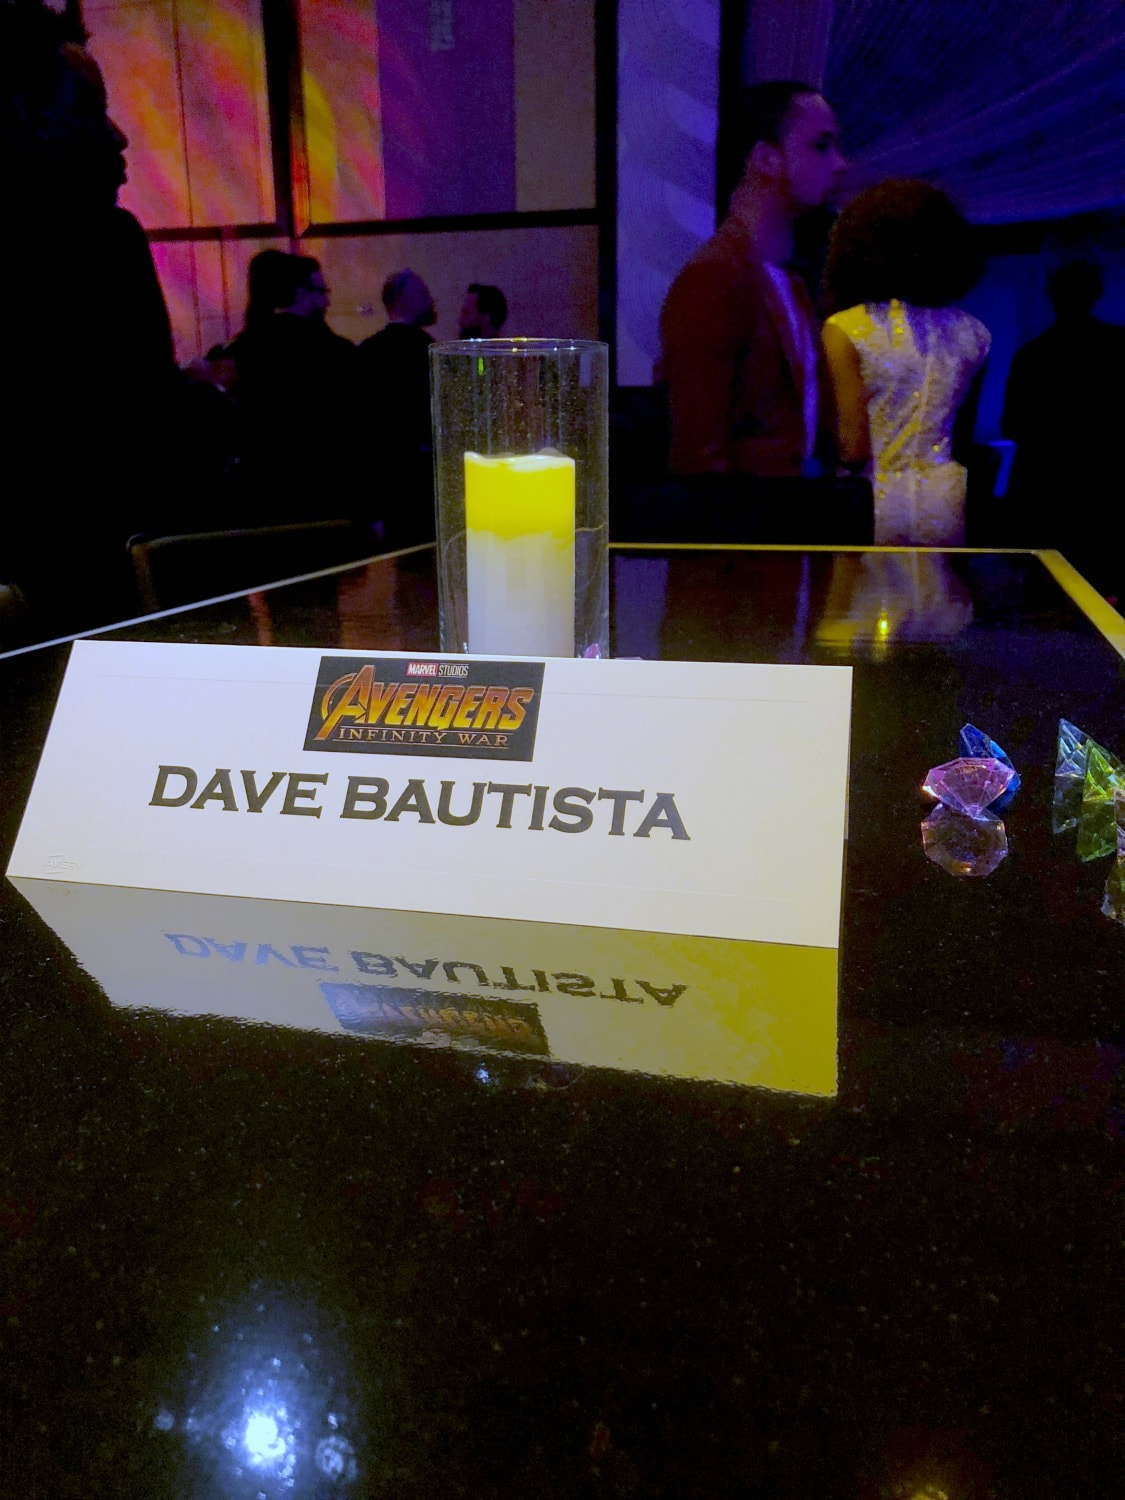 Dave Bautista's Table